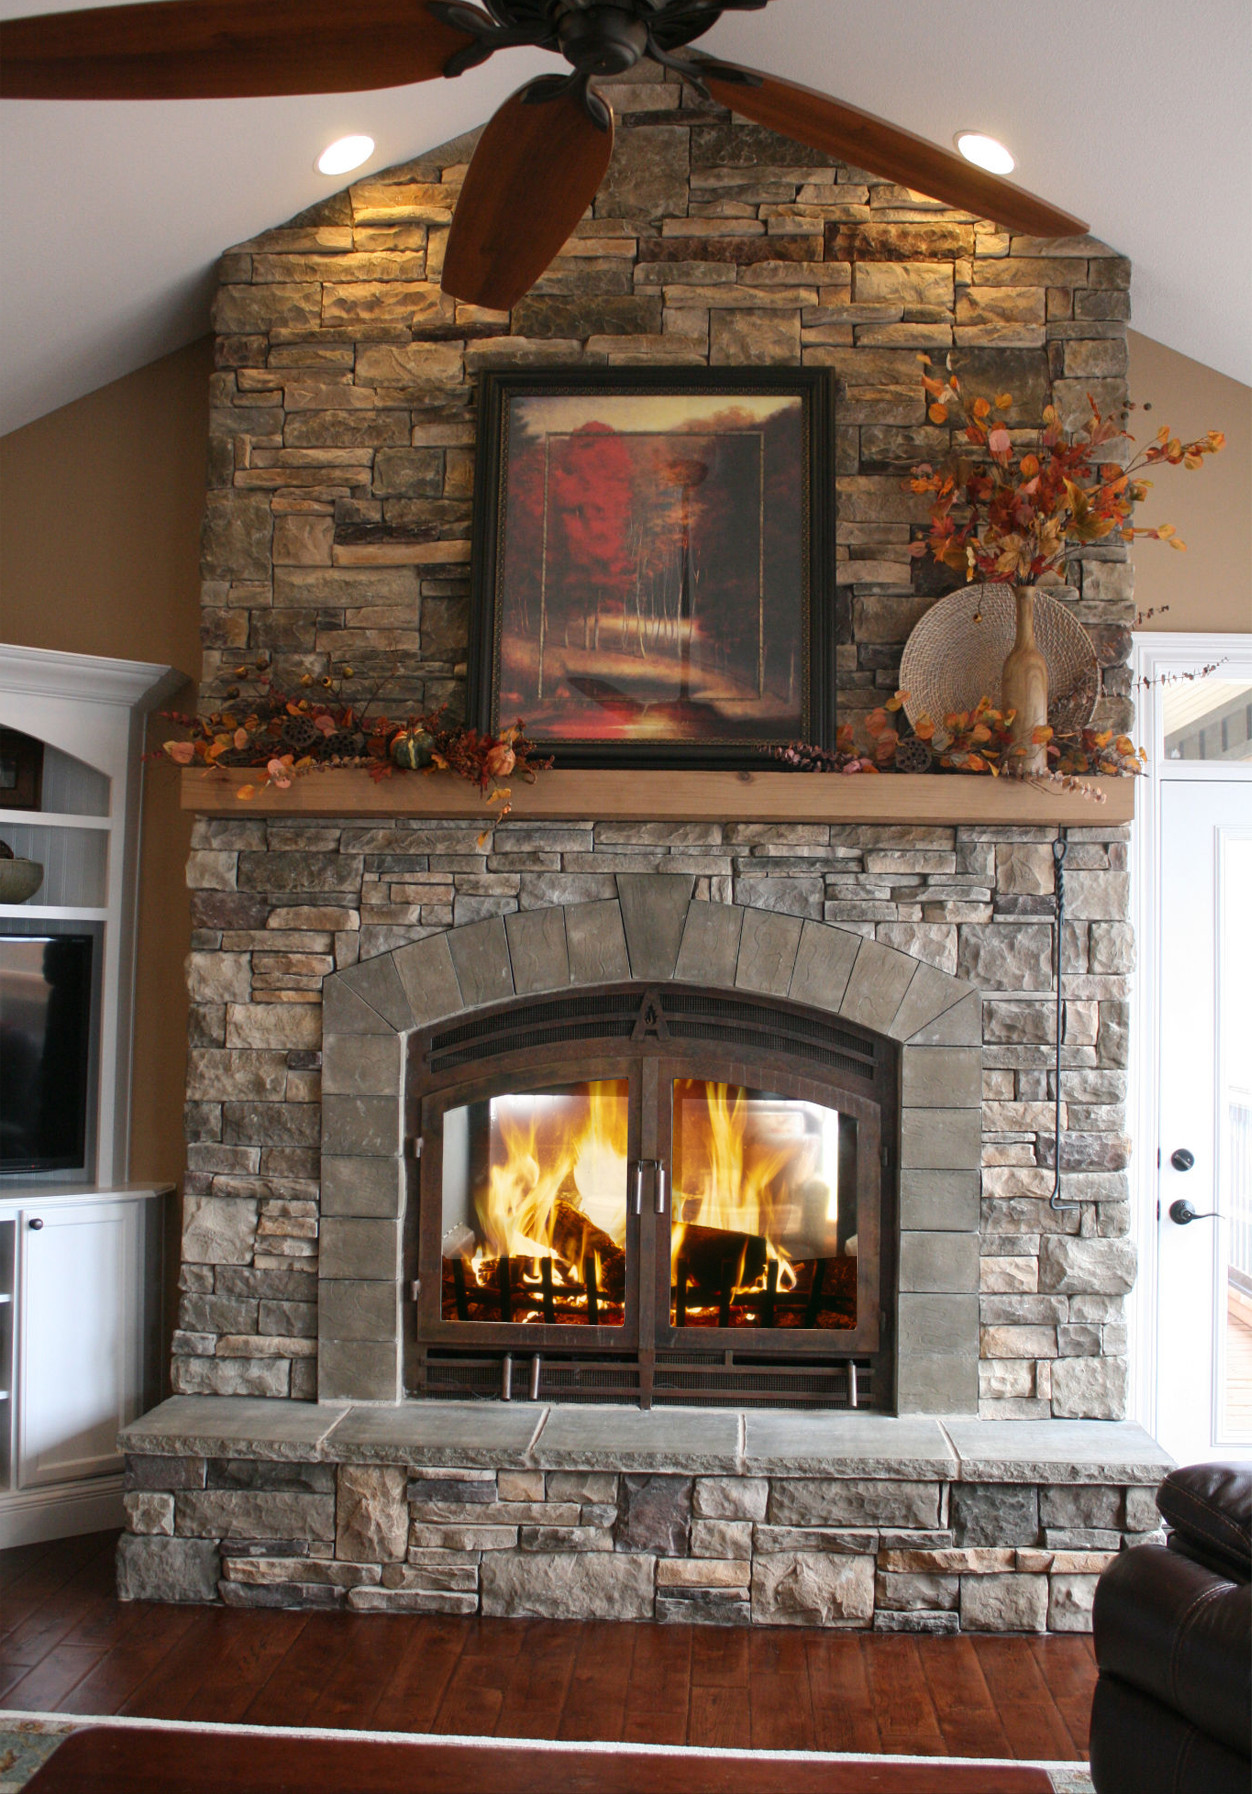 Best ideas about Wood For Fireplace . Save or Pin Indoor Outdoor Wood Fireplace Now.